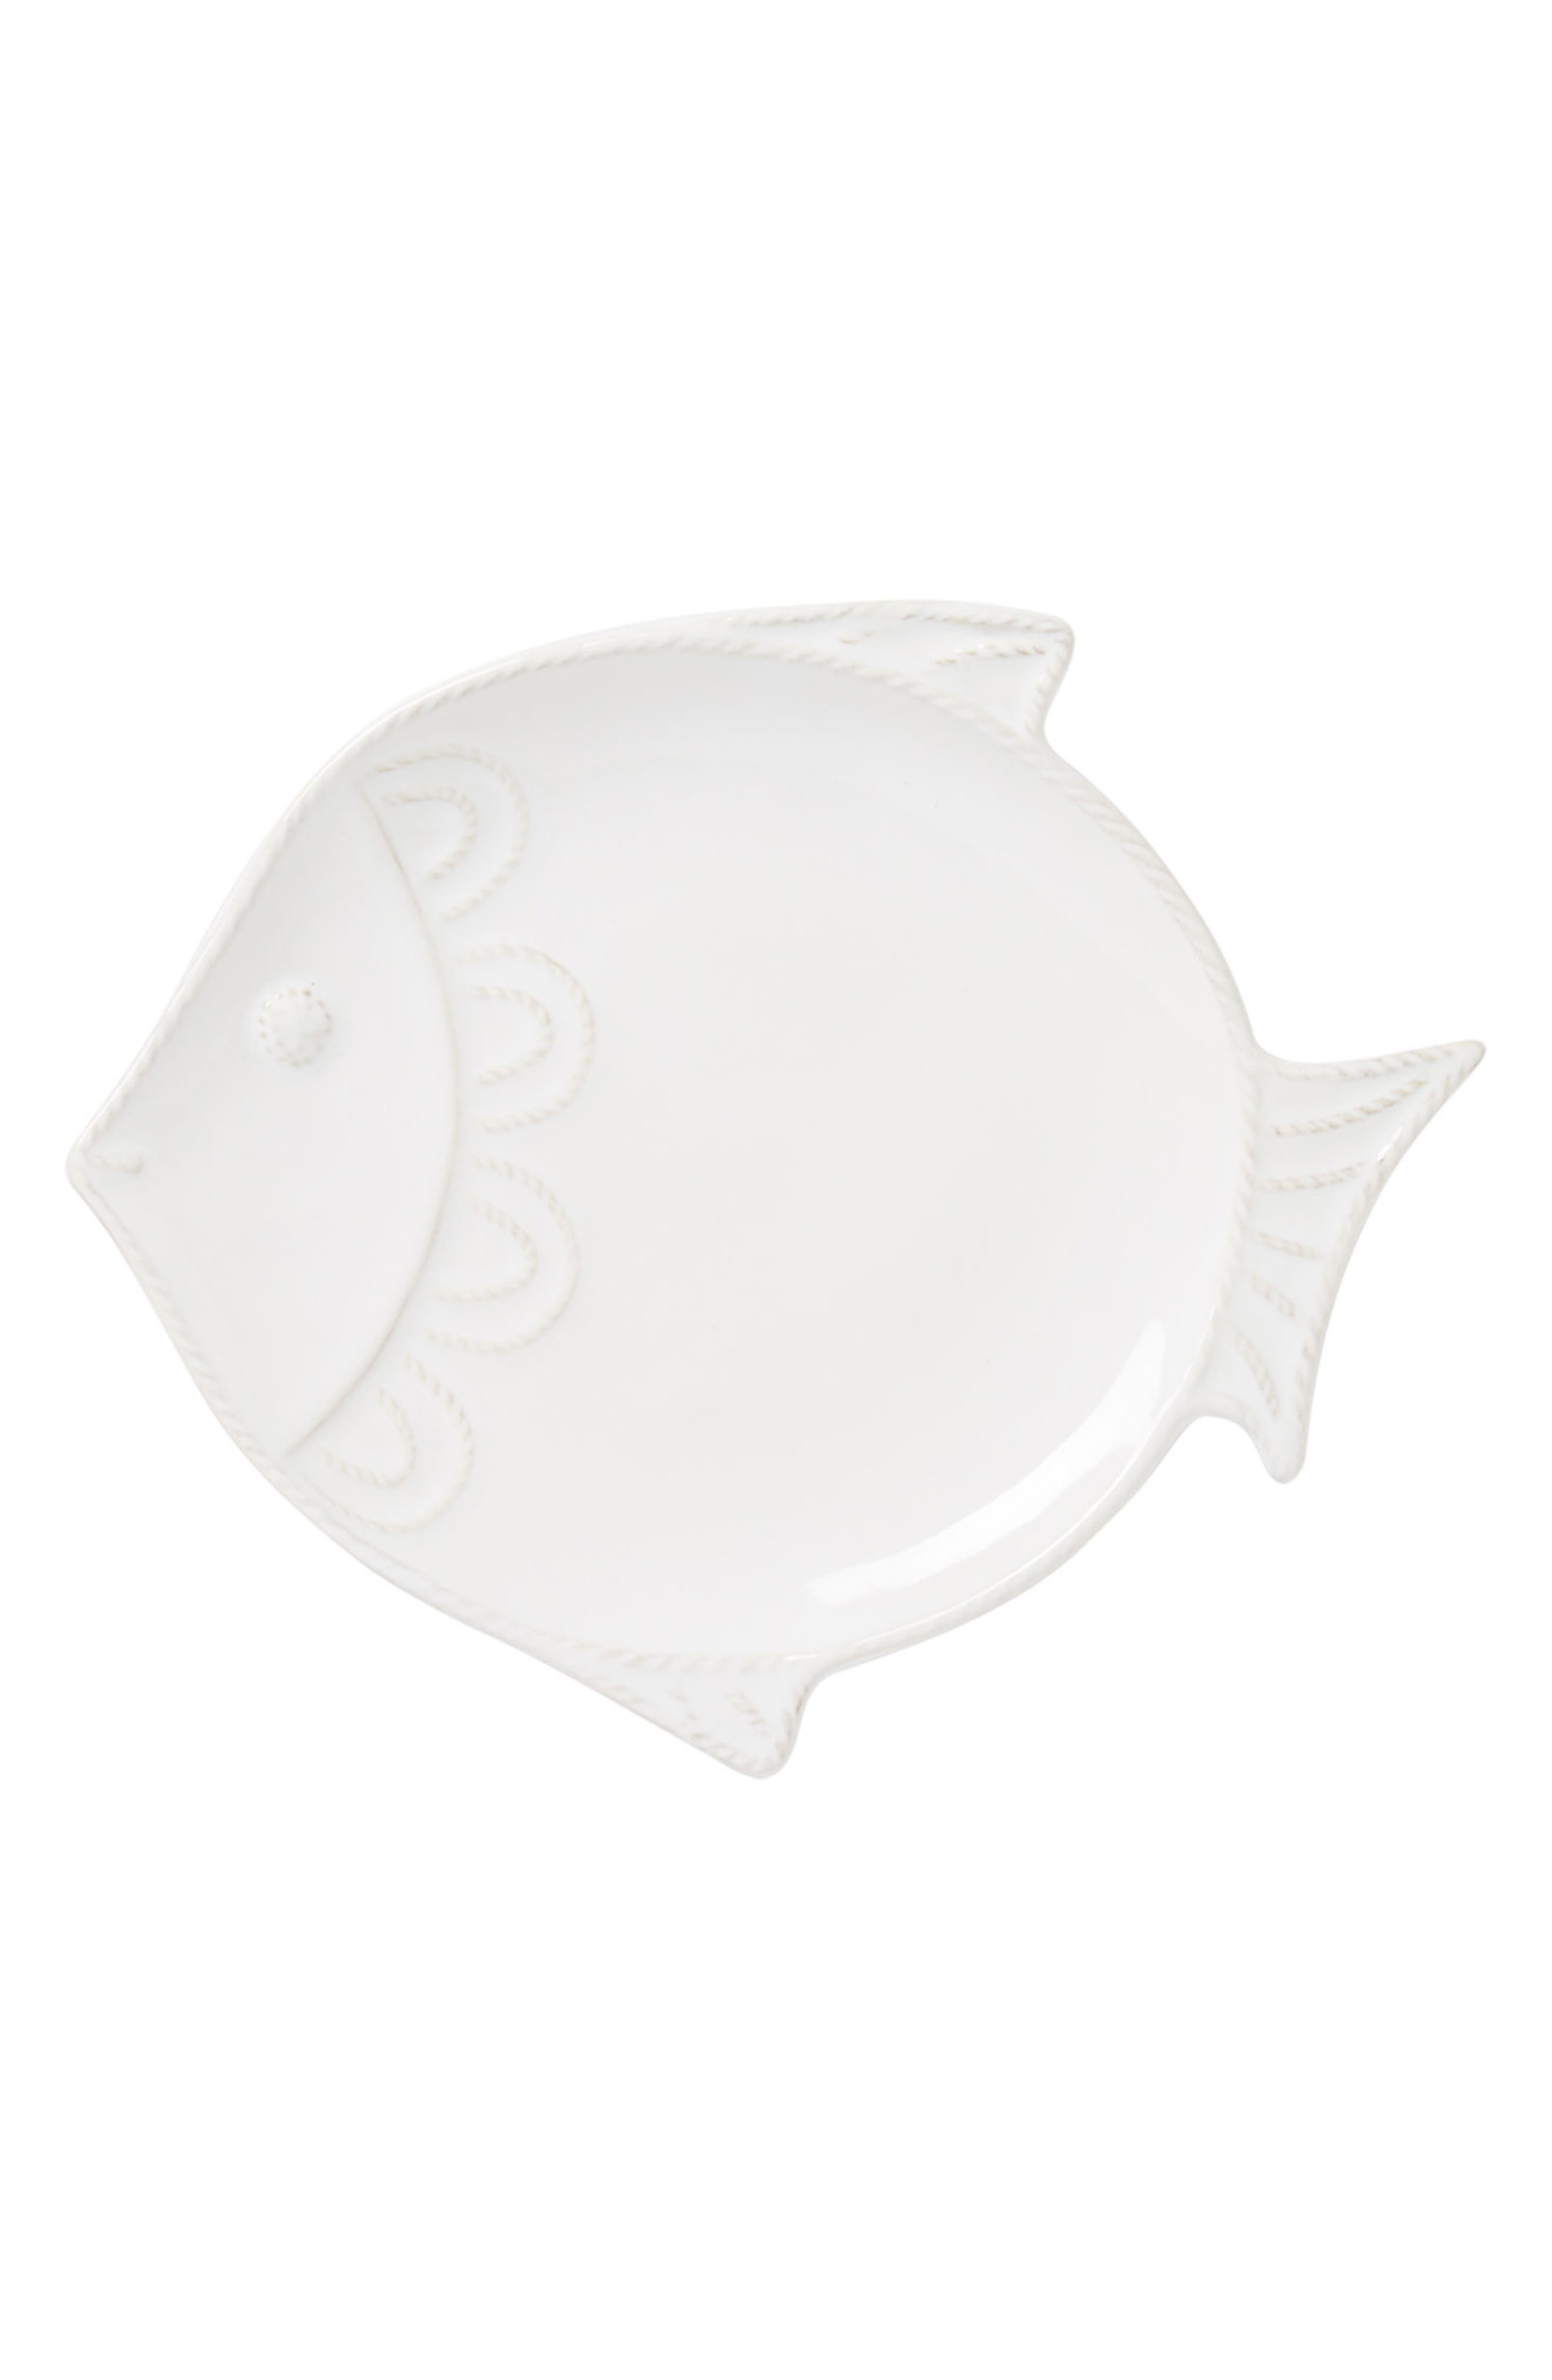 Berry & Thread Fish Salad Plate,                             Main thumbnail 1, color,                             Whitewash